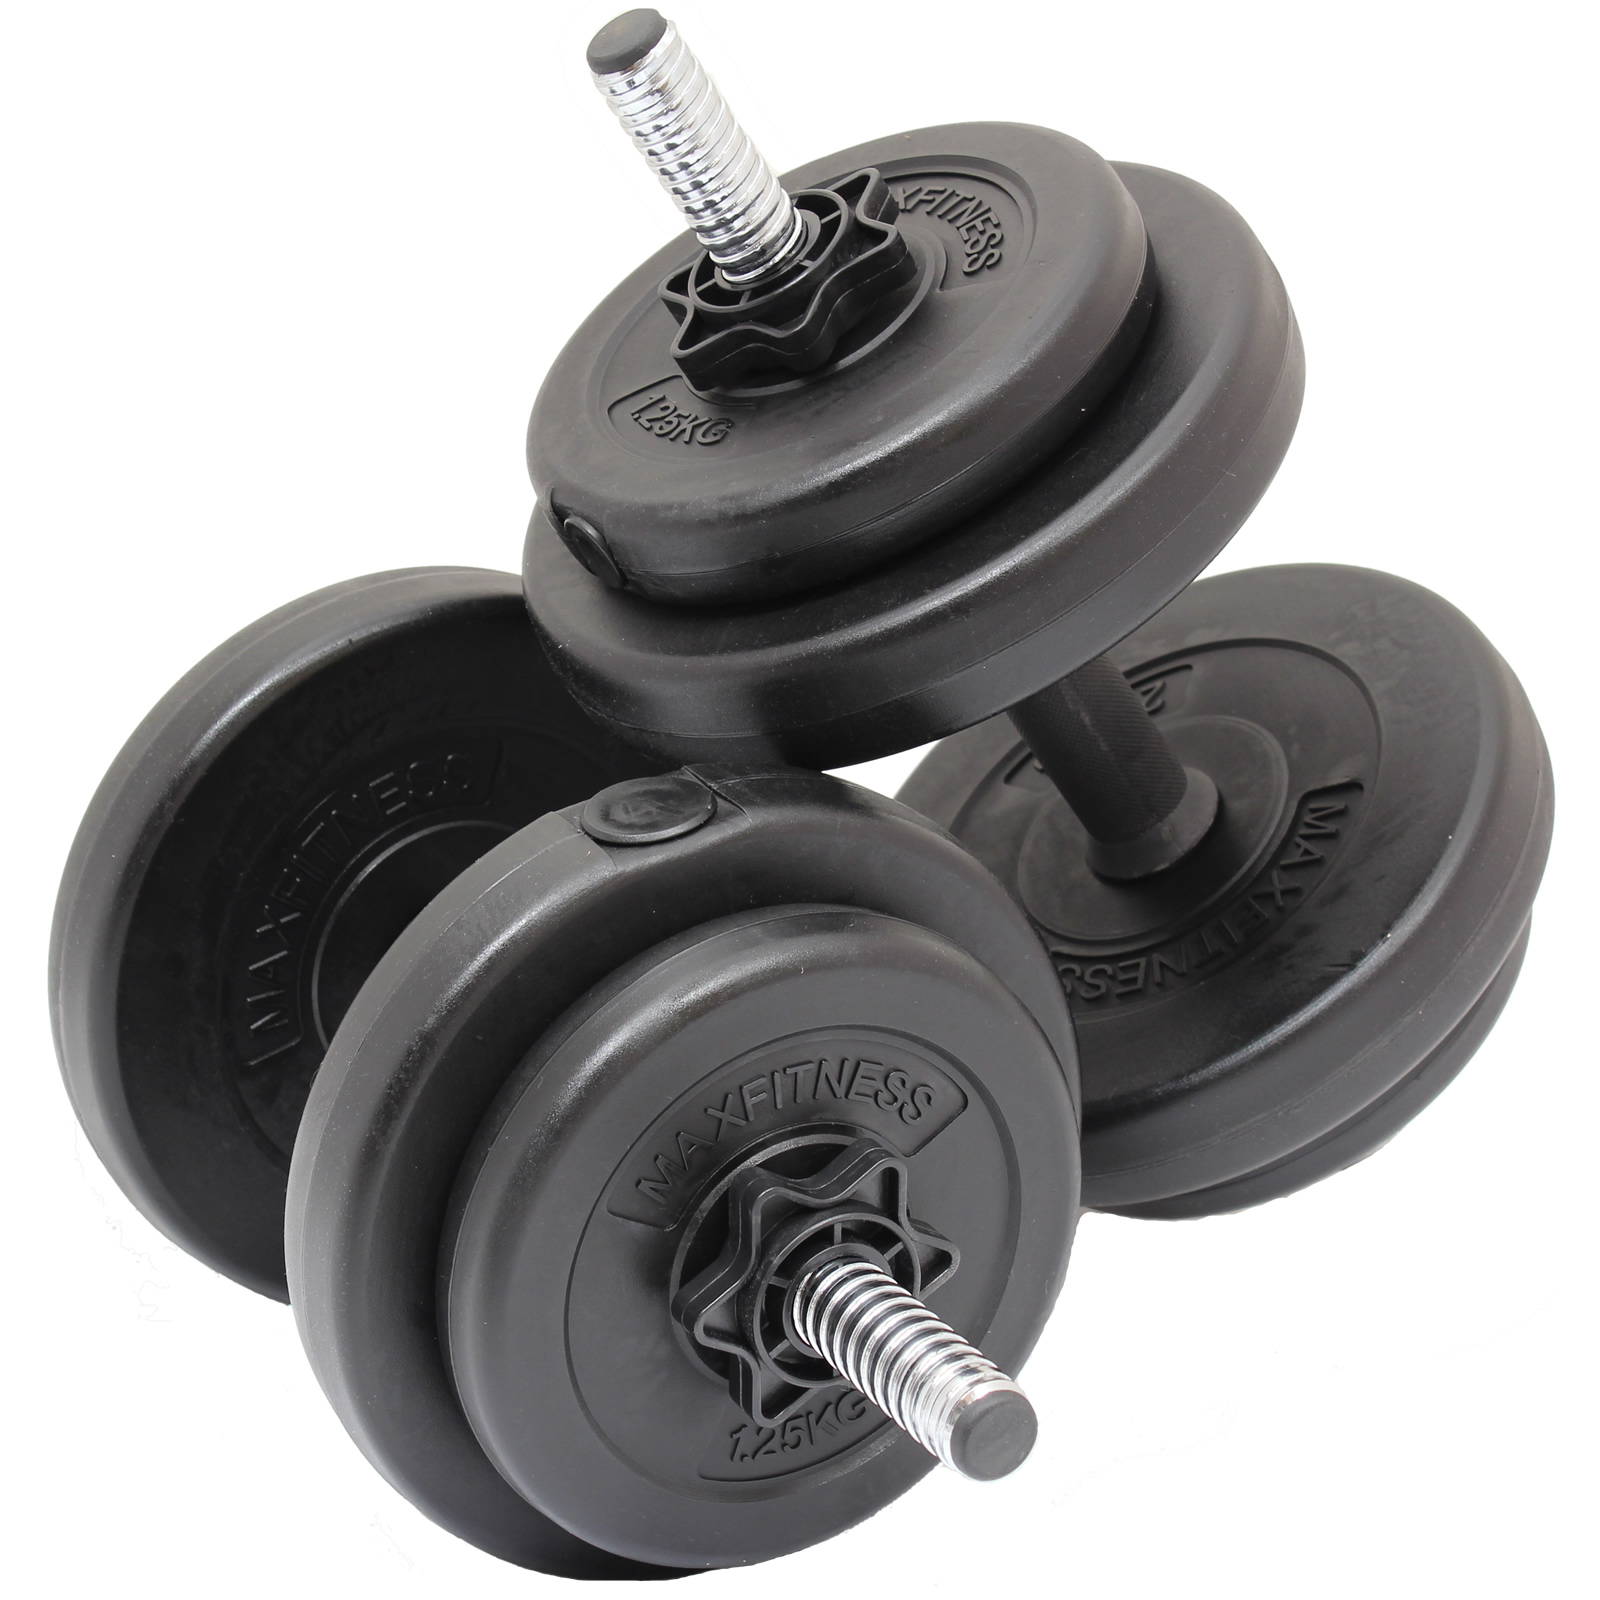 max fitness 15kg dumbbell free weights set home gym workout training